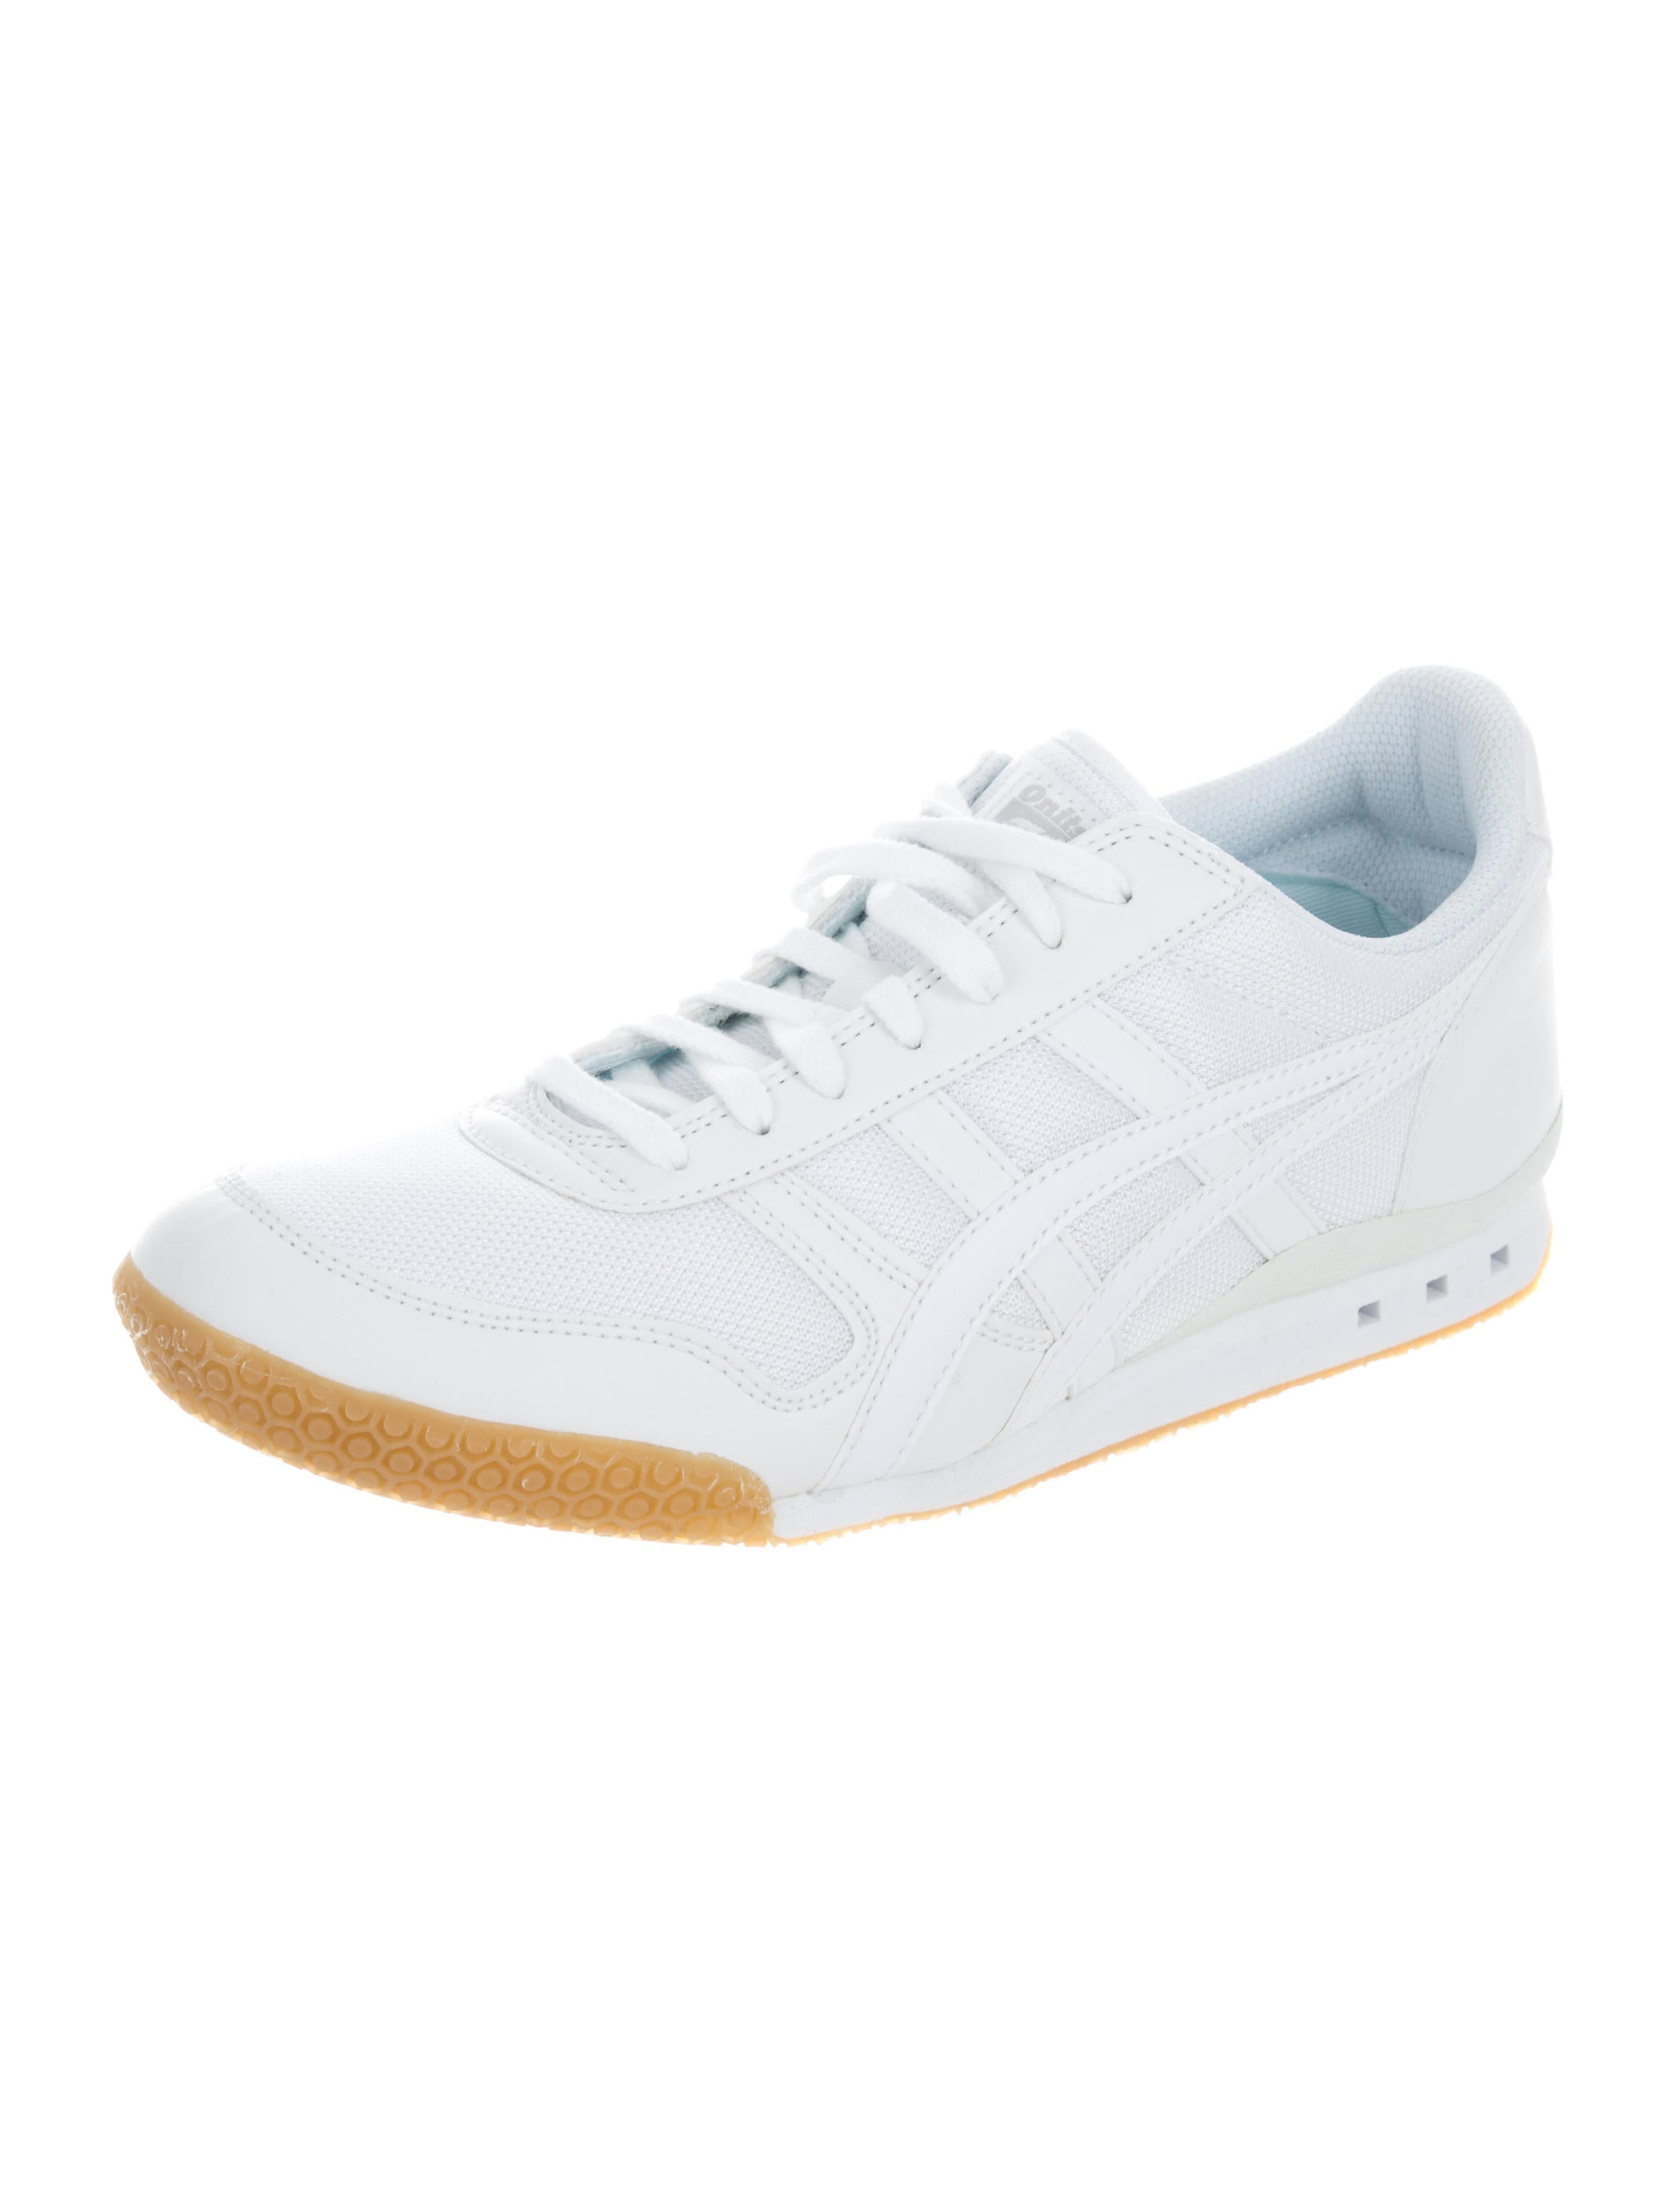 Onitsuka Tiger Mesh Low-Top Sneakers w/ Tags fast delivery sale online BCXm3k8